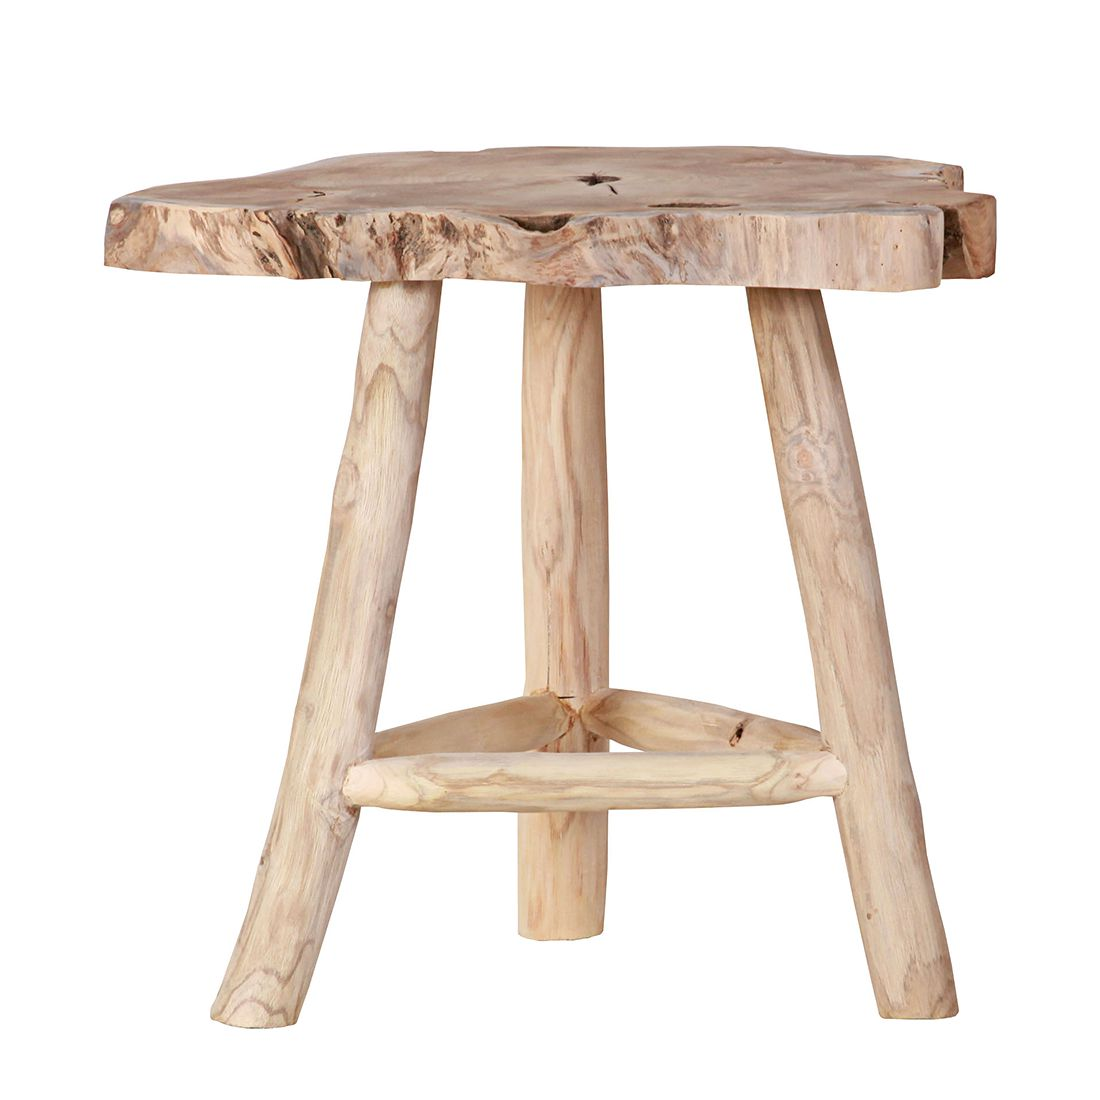 Hocker Wilton - Massivaltholz Teak, ars manufacti